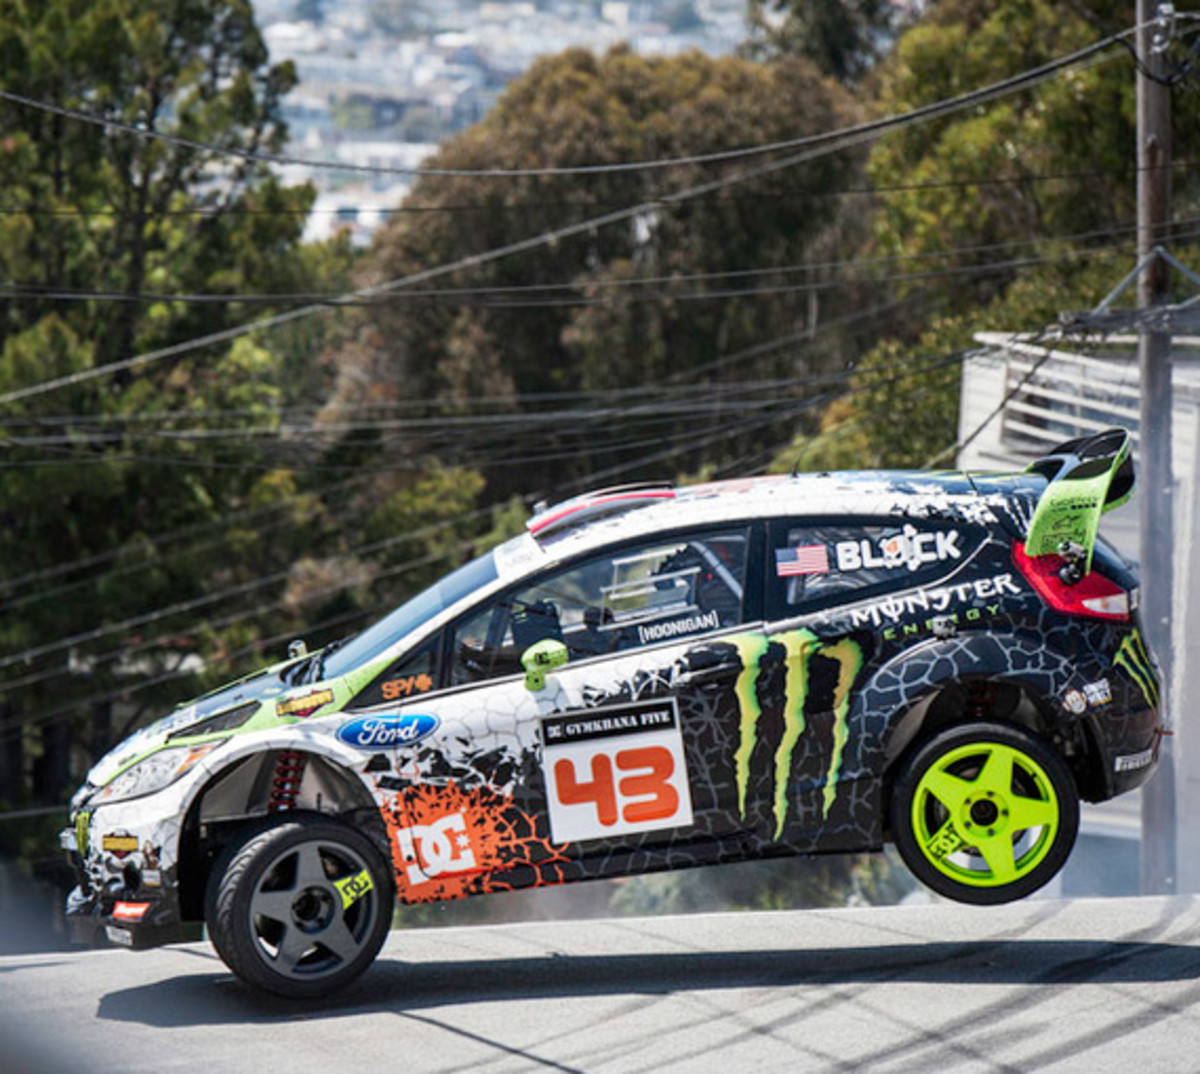 dc-ken-block-gymkhana-five-san-francisco-05